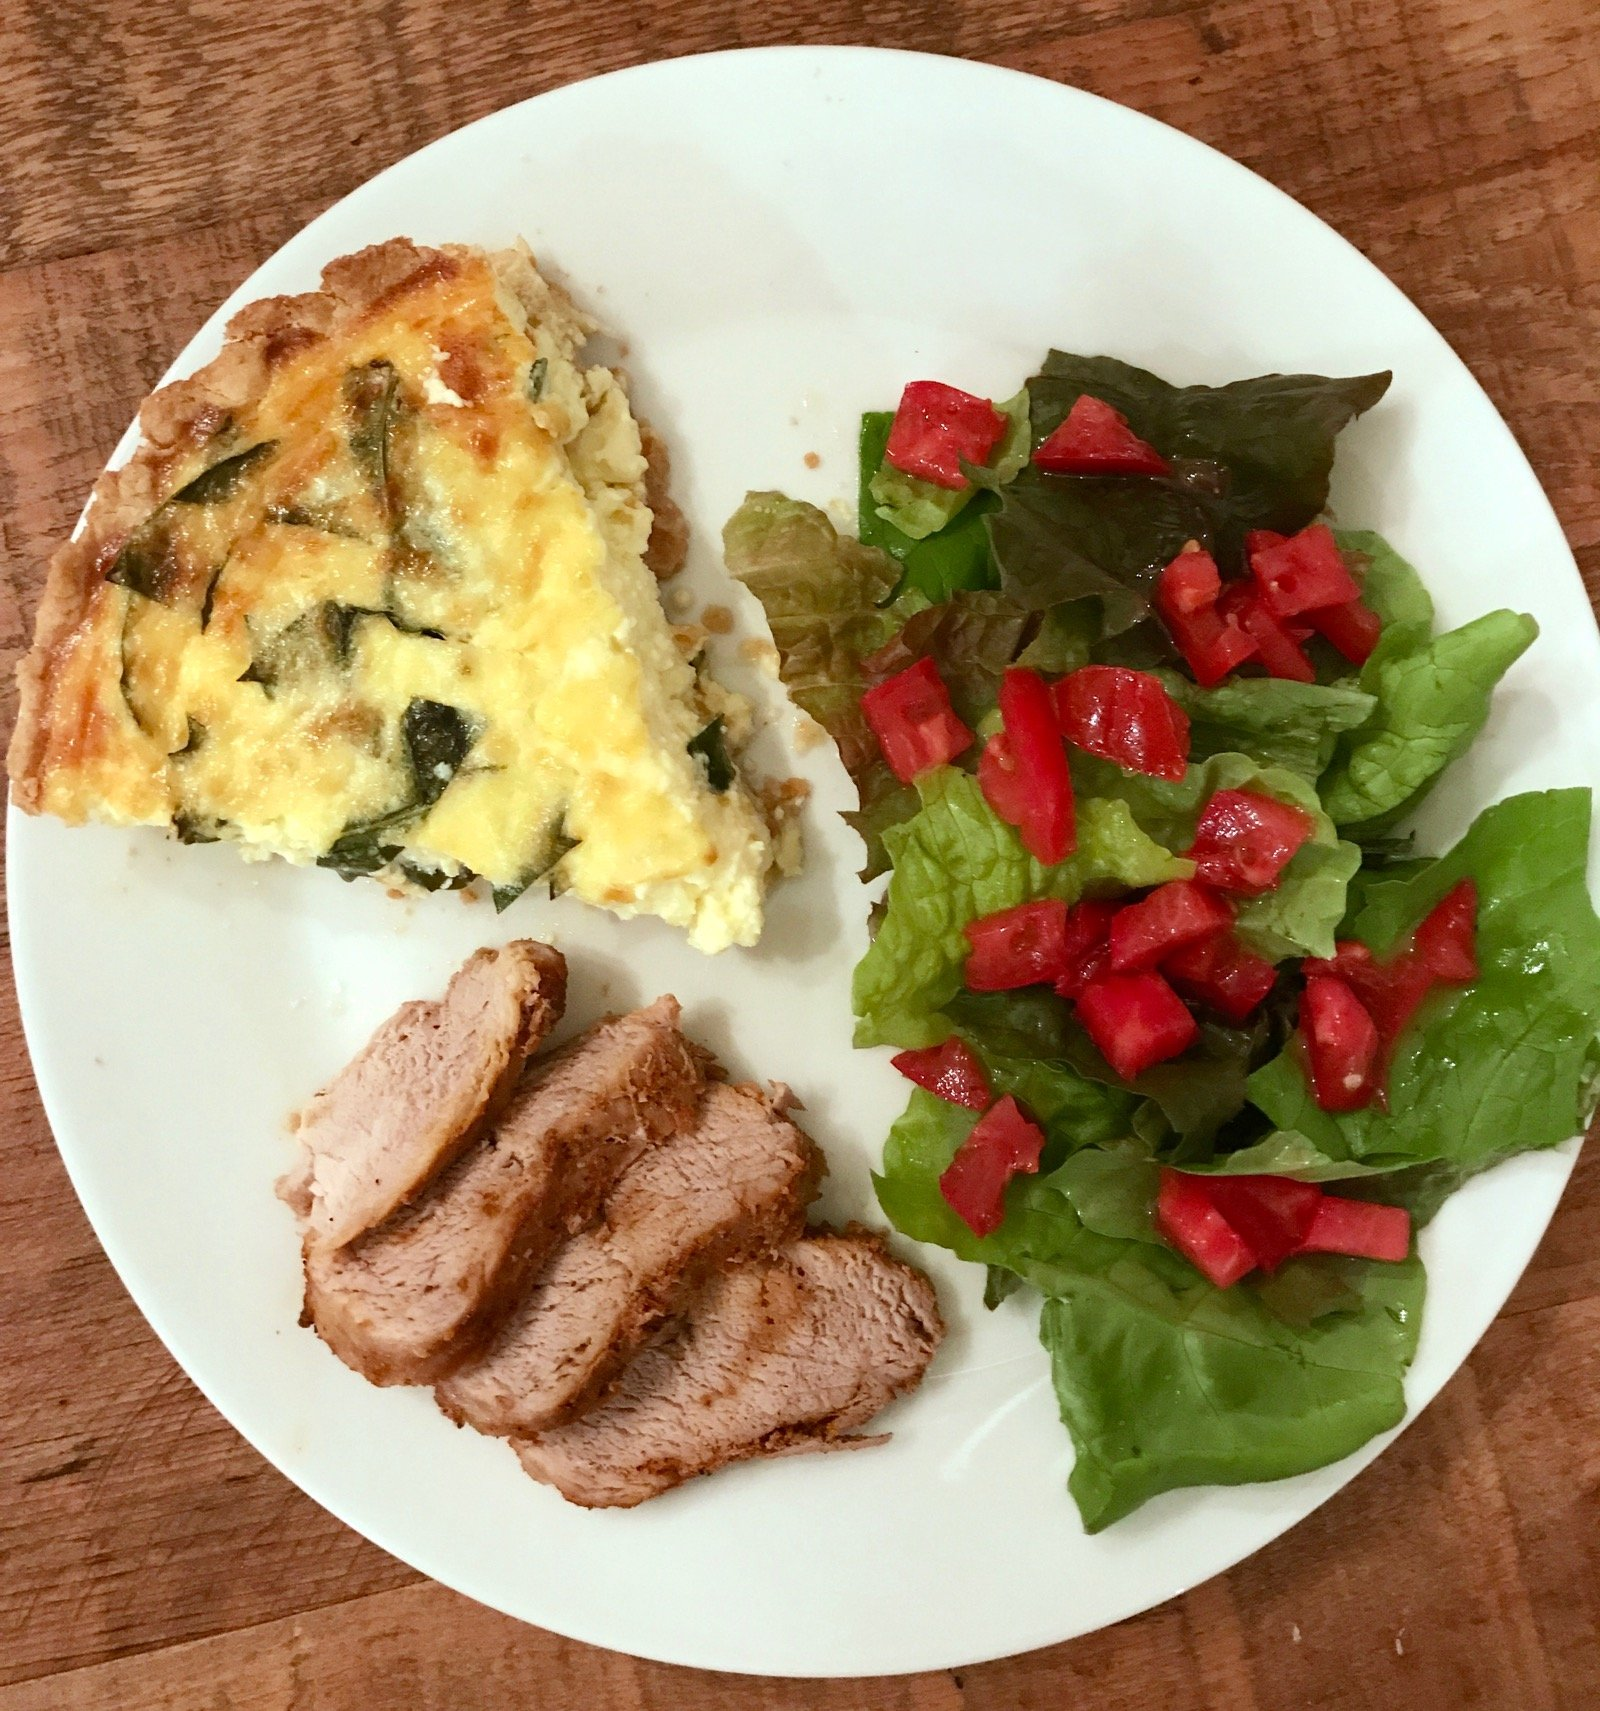 Cheesy Kale Quiche as a side dish